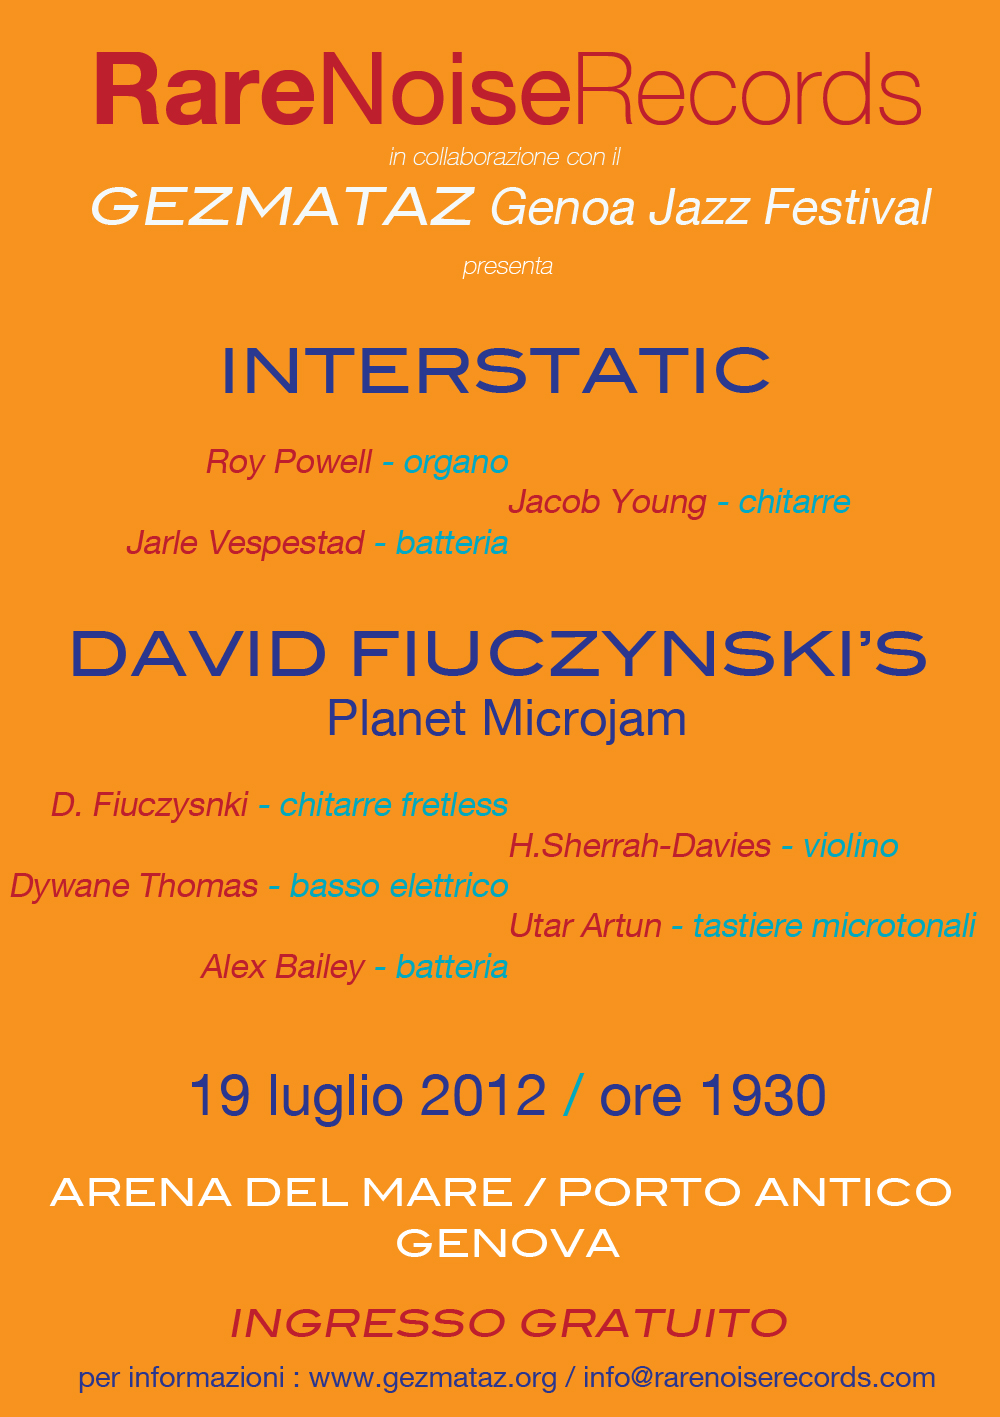 RareNoise Records Night at Gezmataz : InterStatic and Planet MicroJam 10